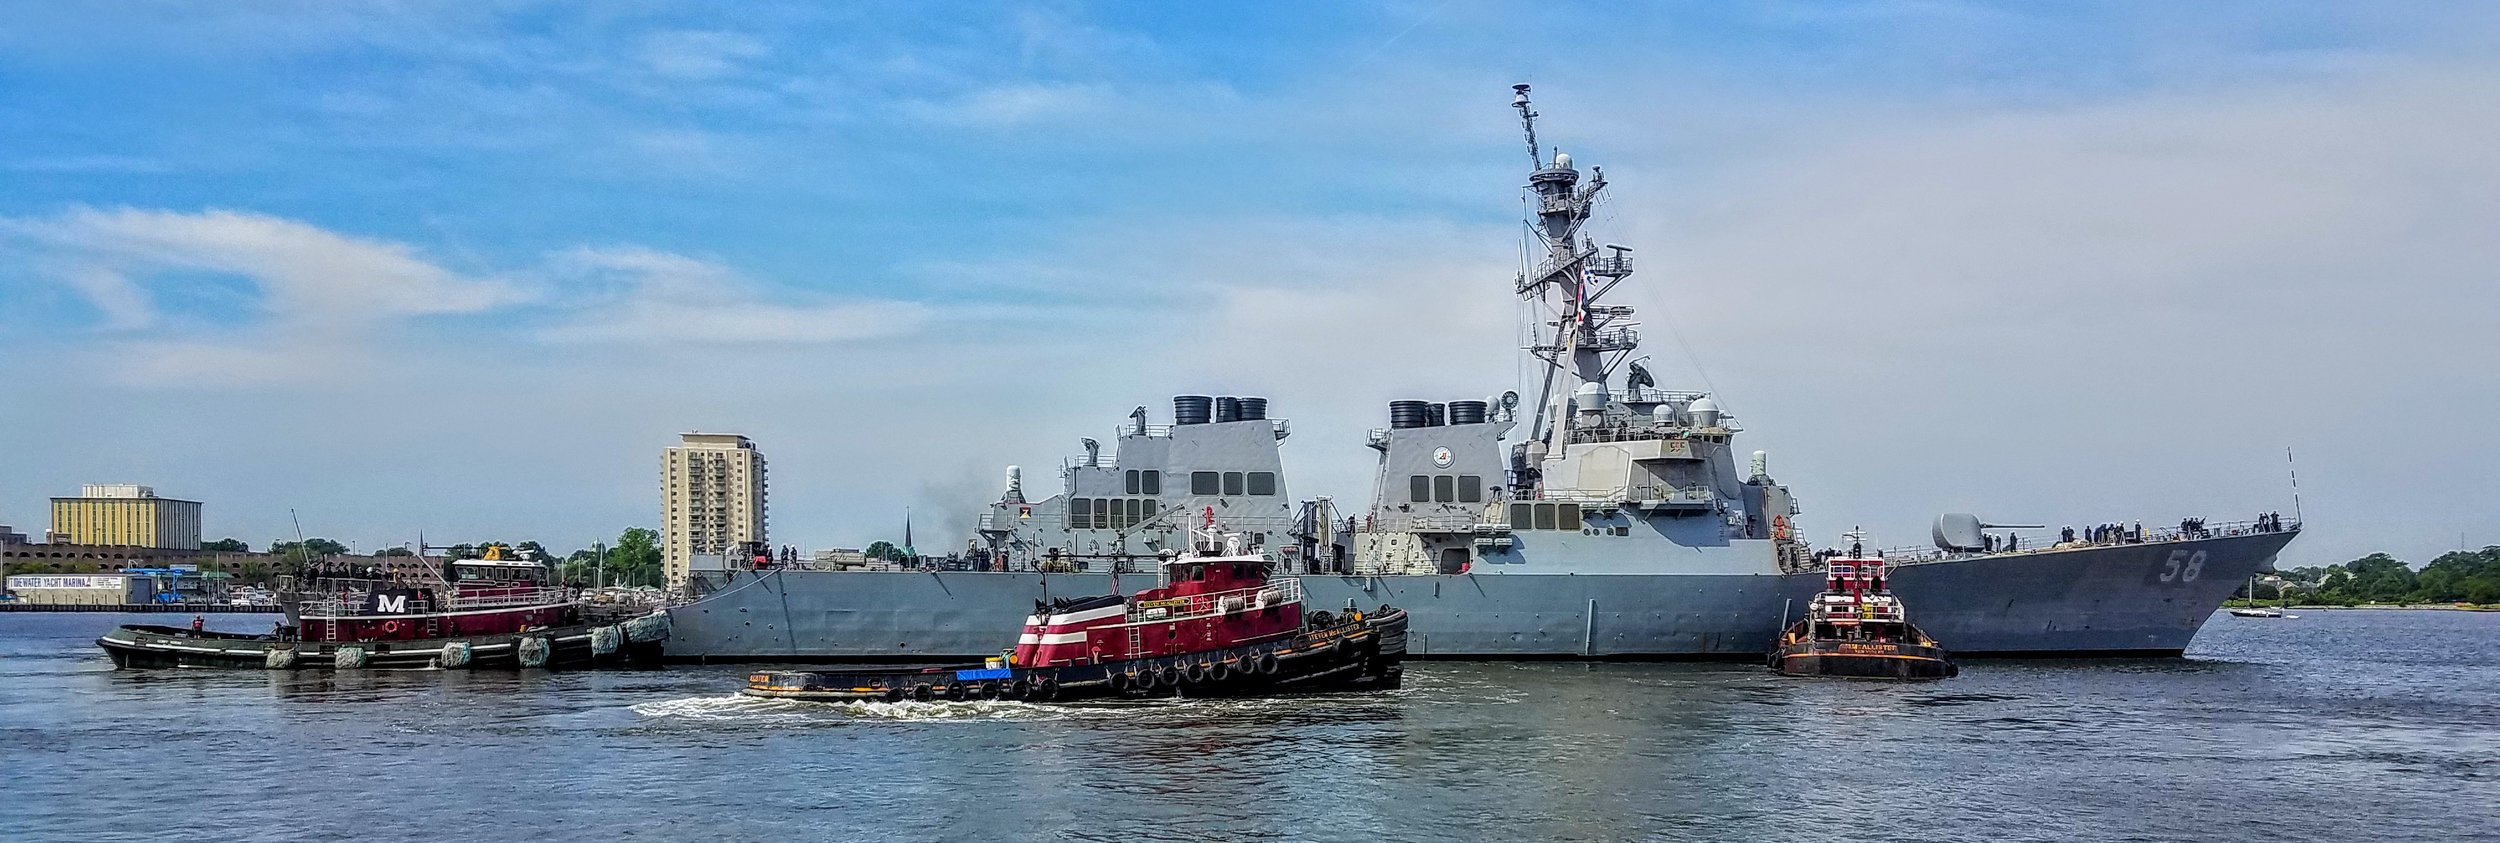 Leaving Norfolk for Cape Charles. War ship 58 being moved by my favorite tugs. Larry had to hail the War ship 58 to get permission from their captain to pass.